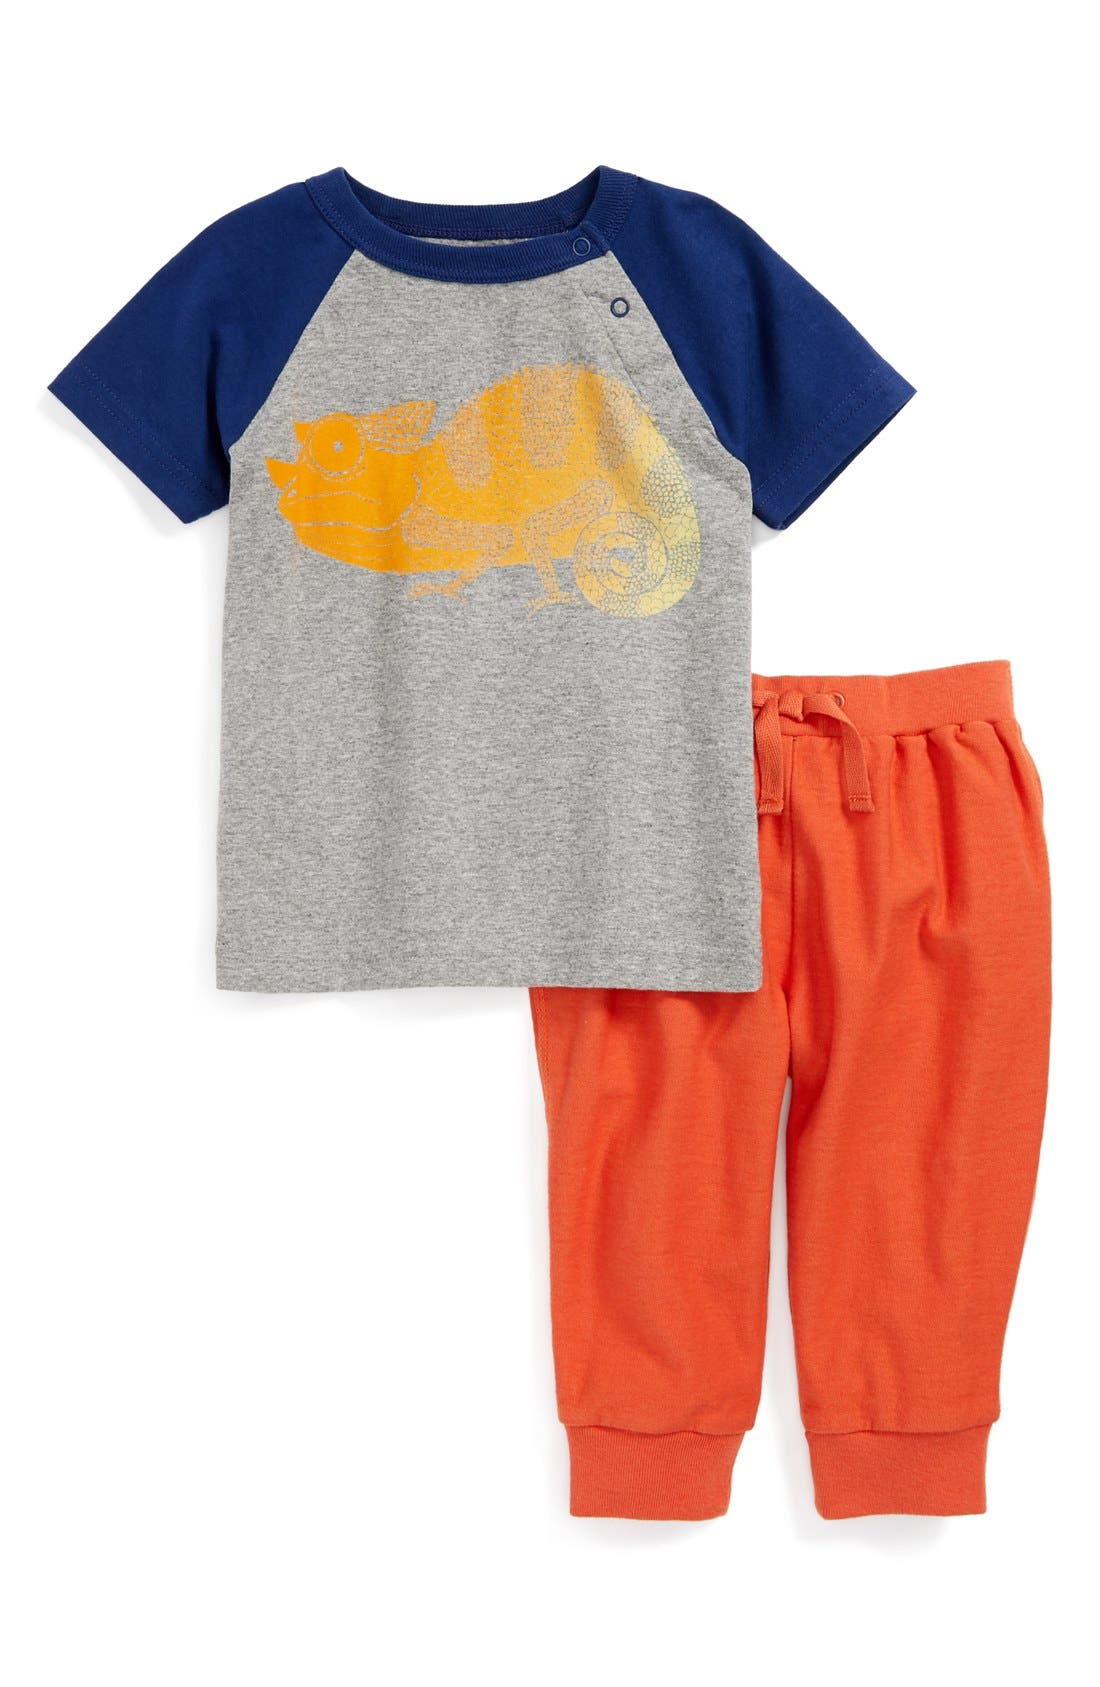 Alternate Image 1 Selected - Tea Collection 'Chameleon' T-Shirt & Pants (Baby Boys)